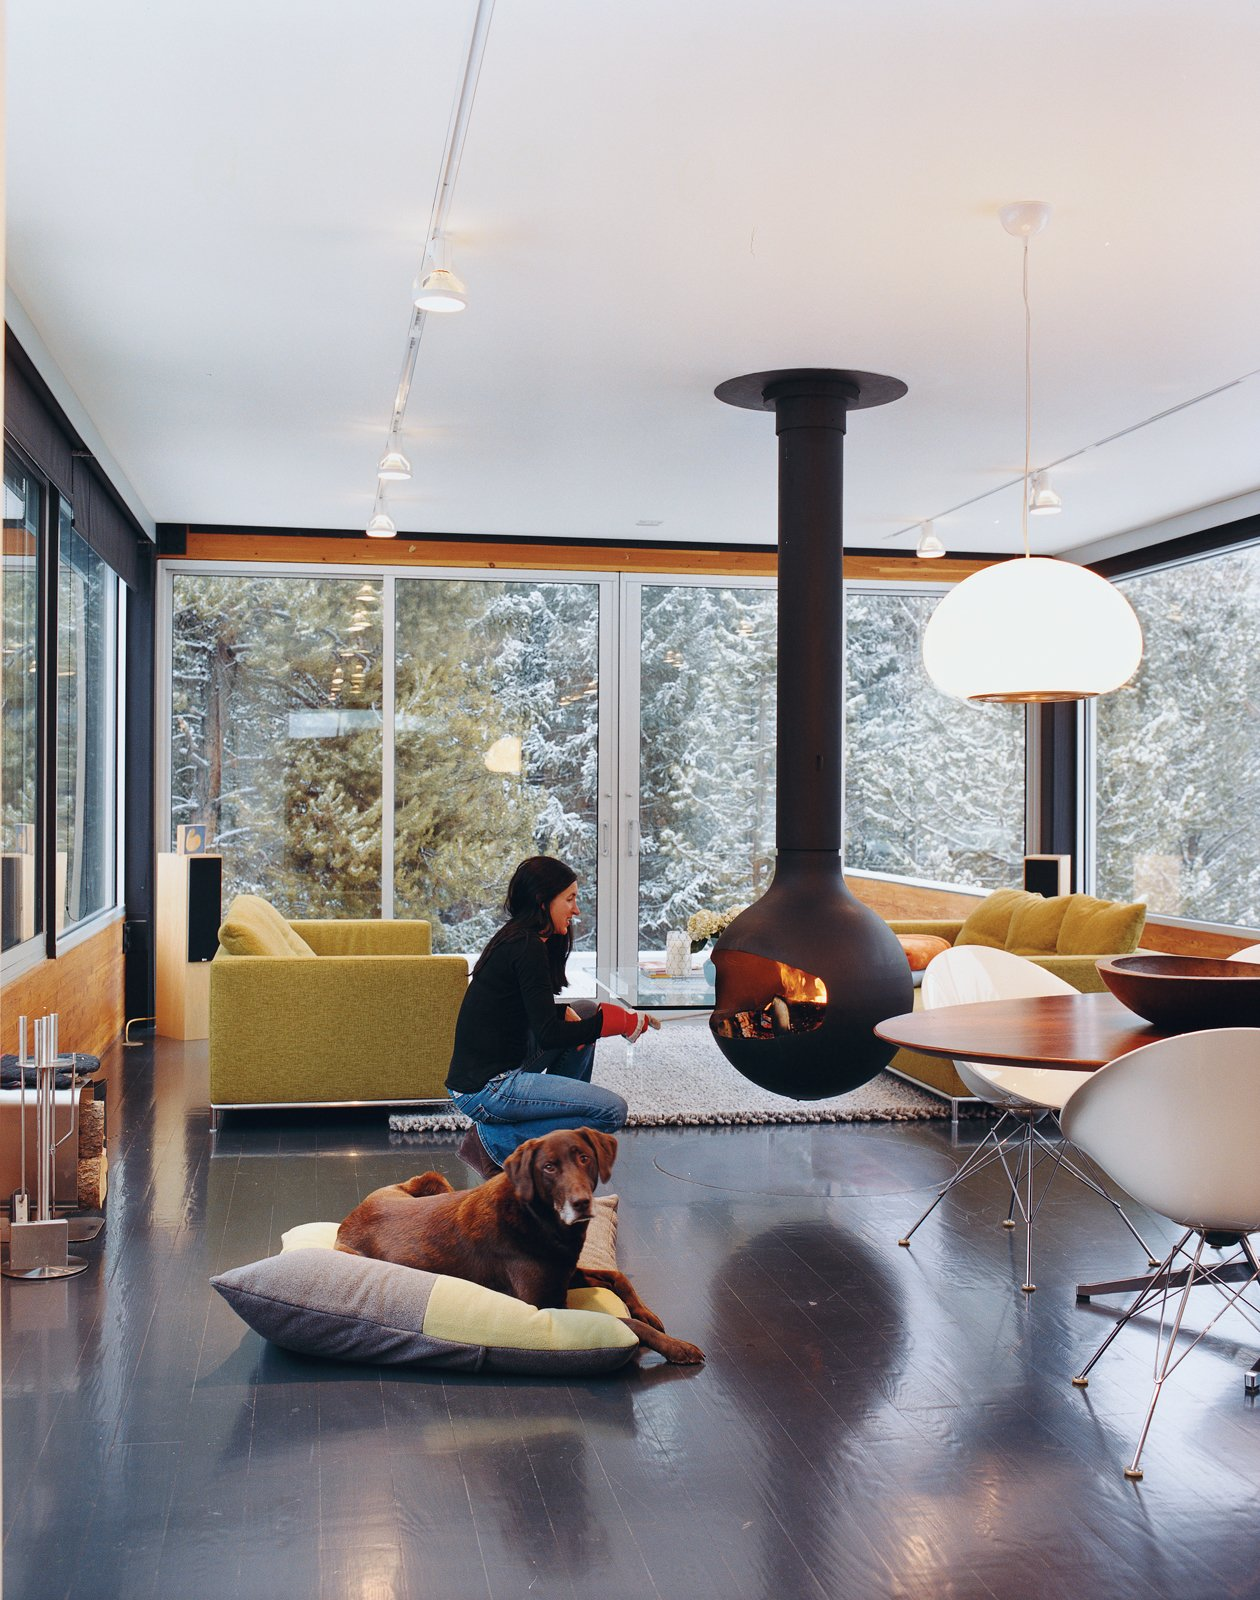 20 Suspended Fireplaces That Will Warm You Up In Style